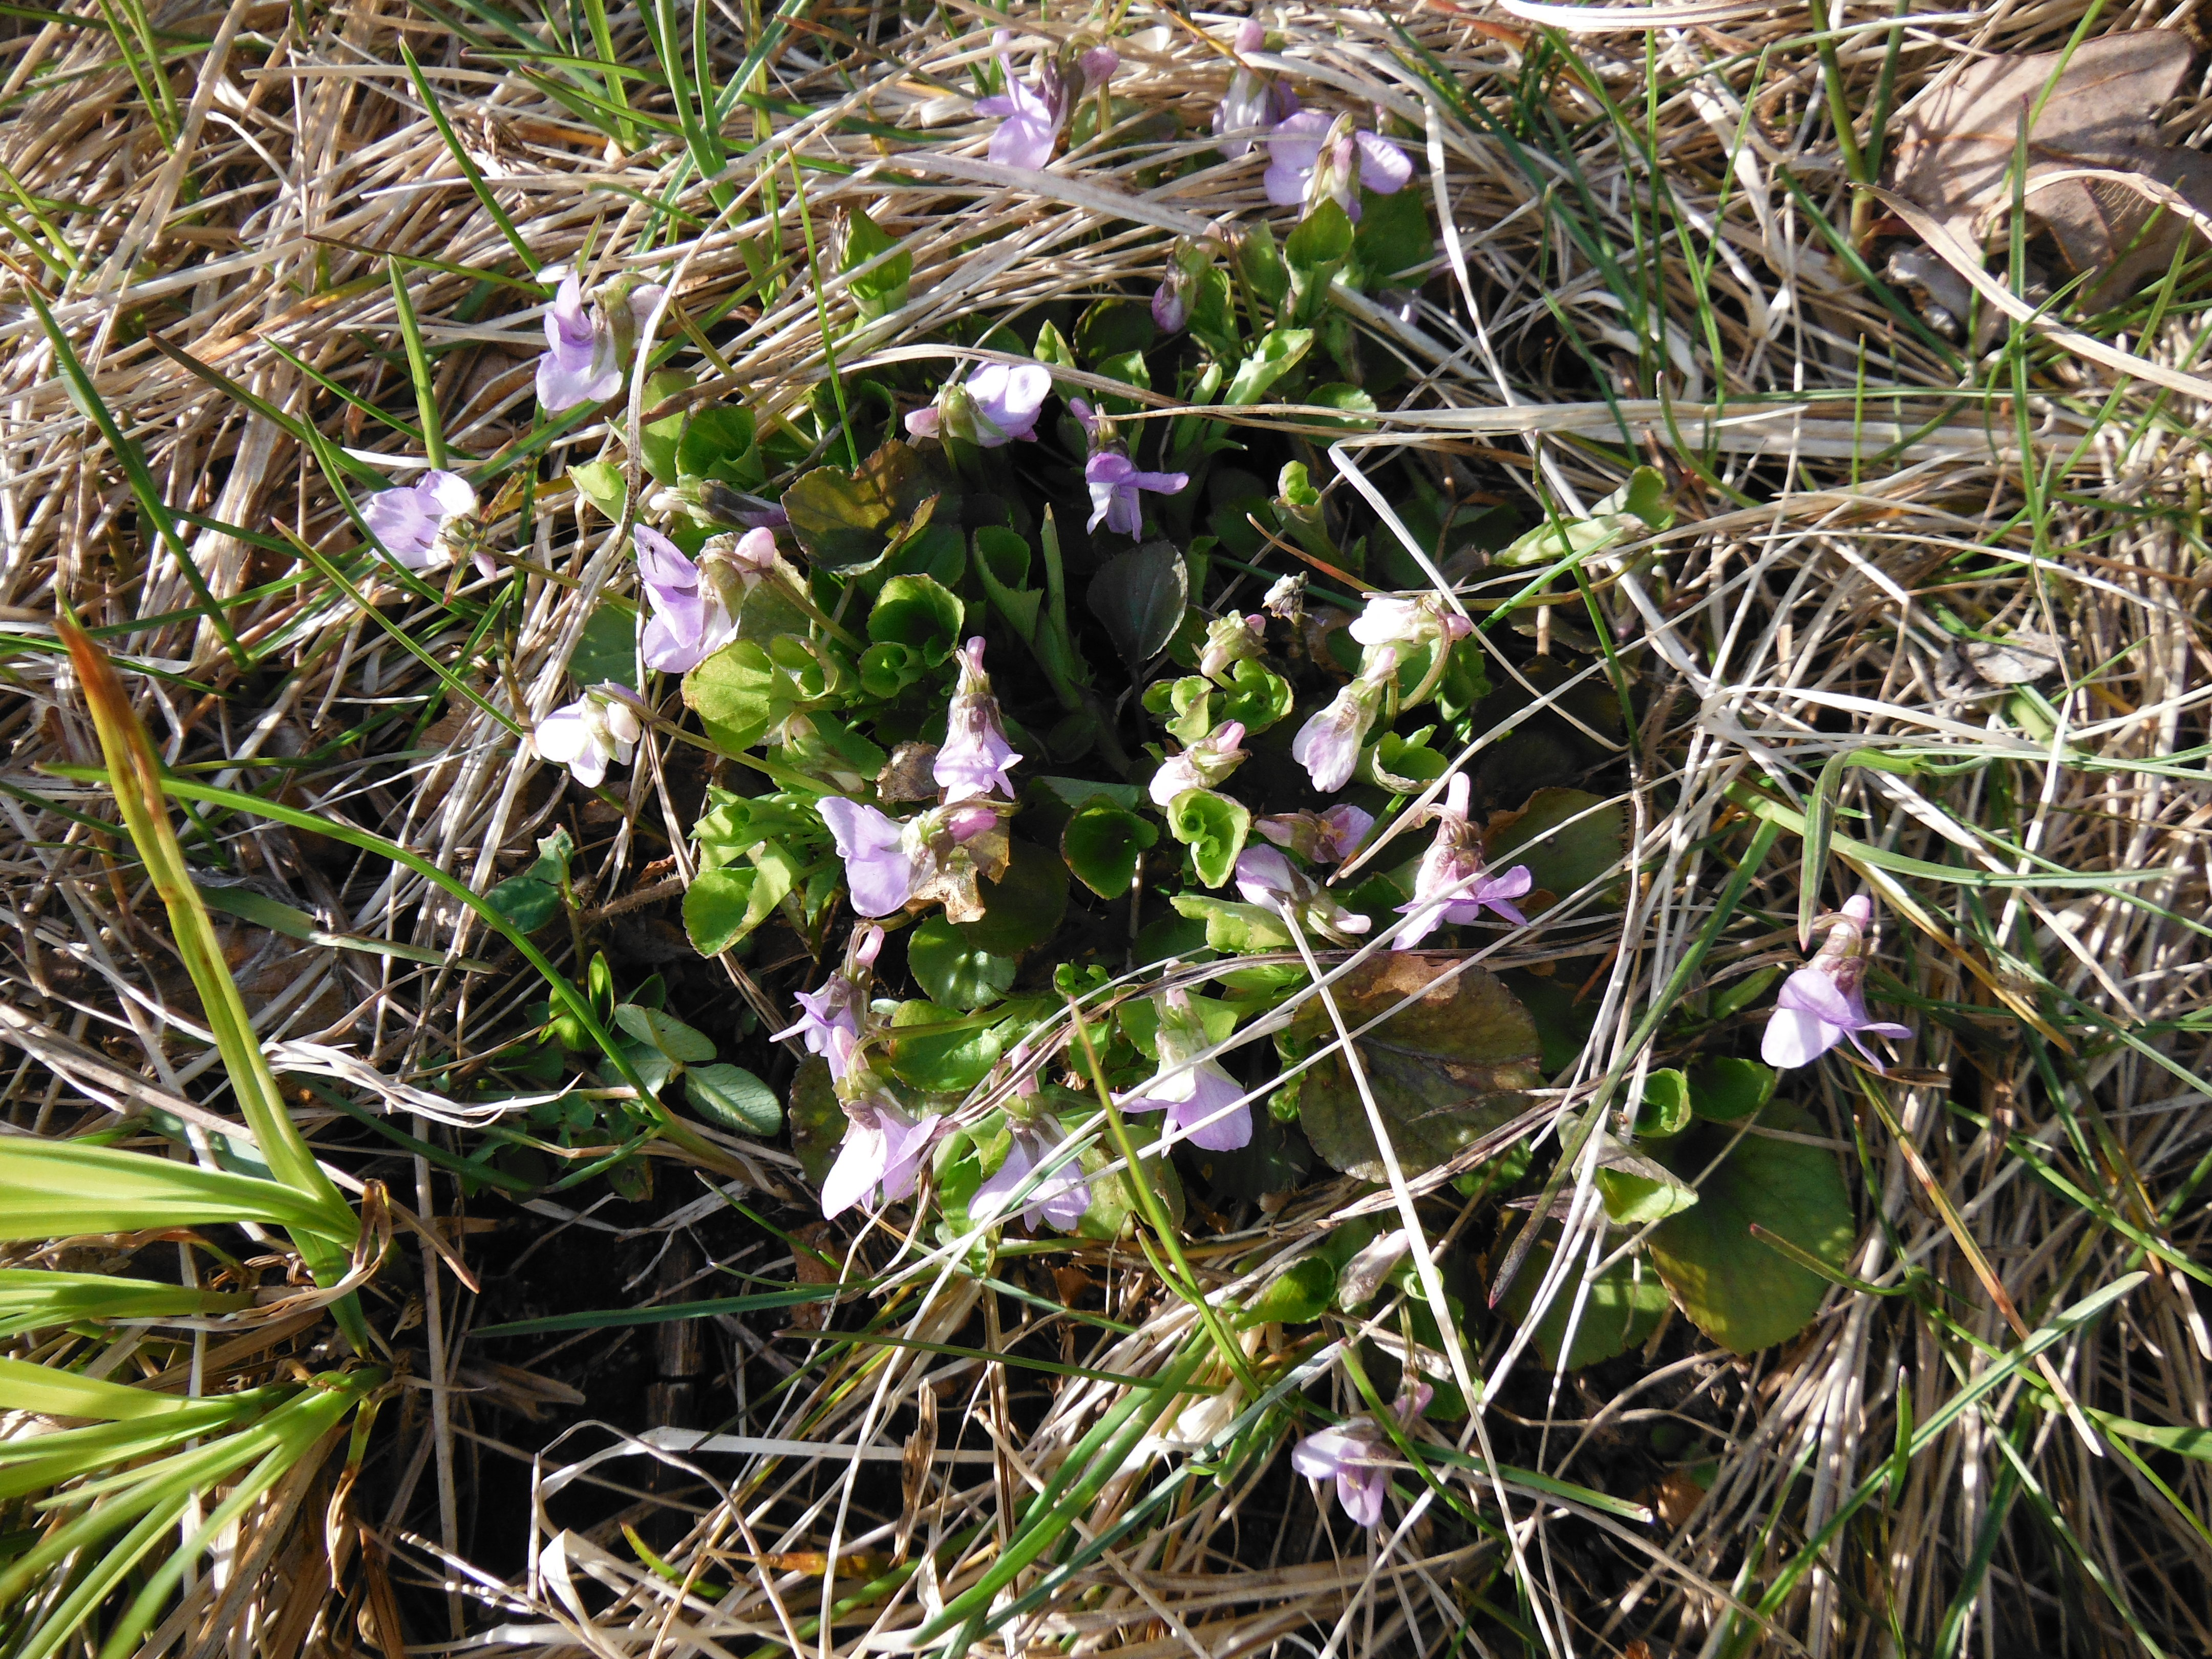 Violets blooming by the shore of the pond